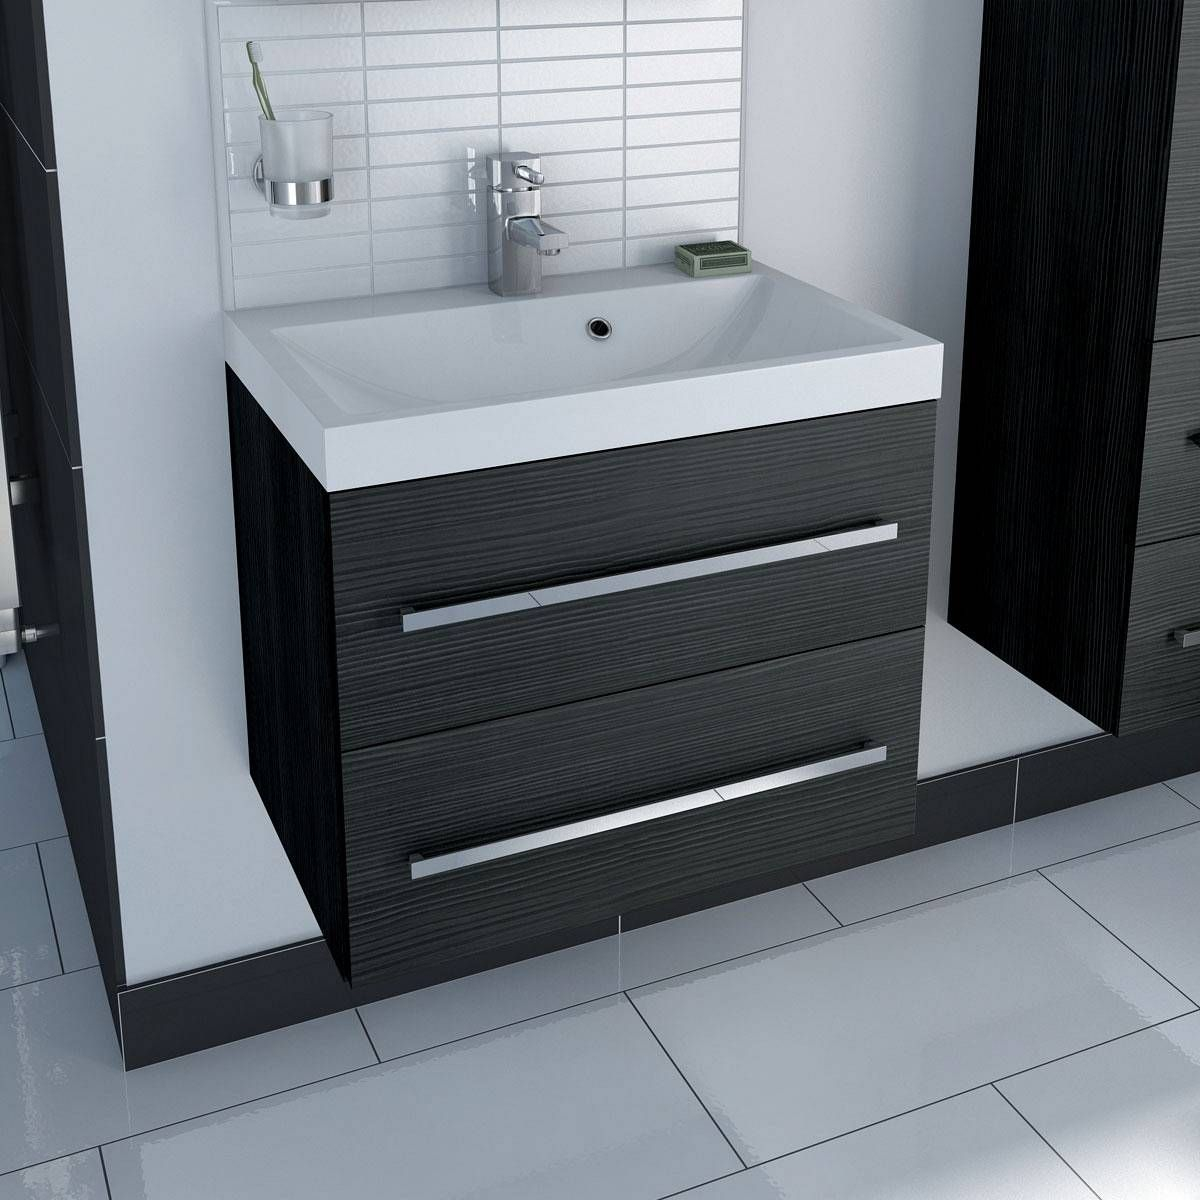 Drift Essen From Mfi Ideas For The House Bathroom Inset Basin throughout measurements 1200 X 1200